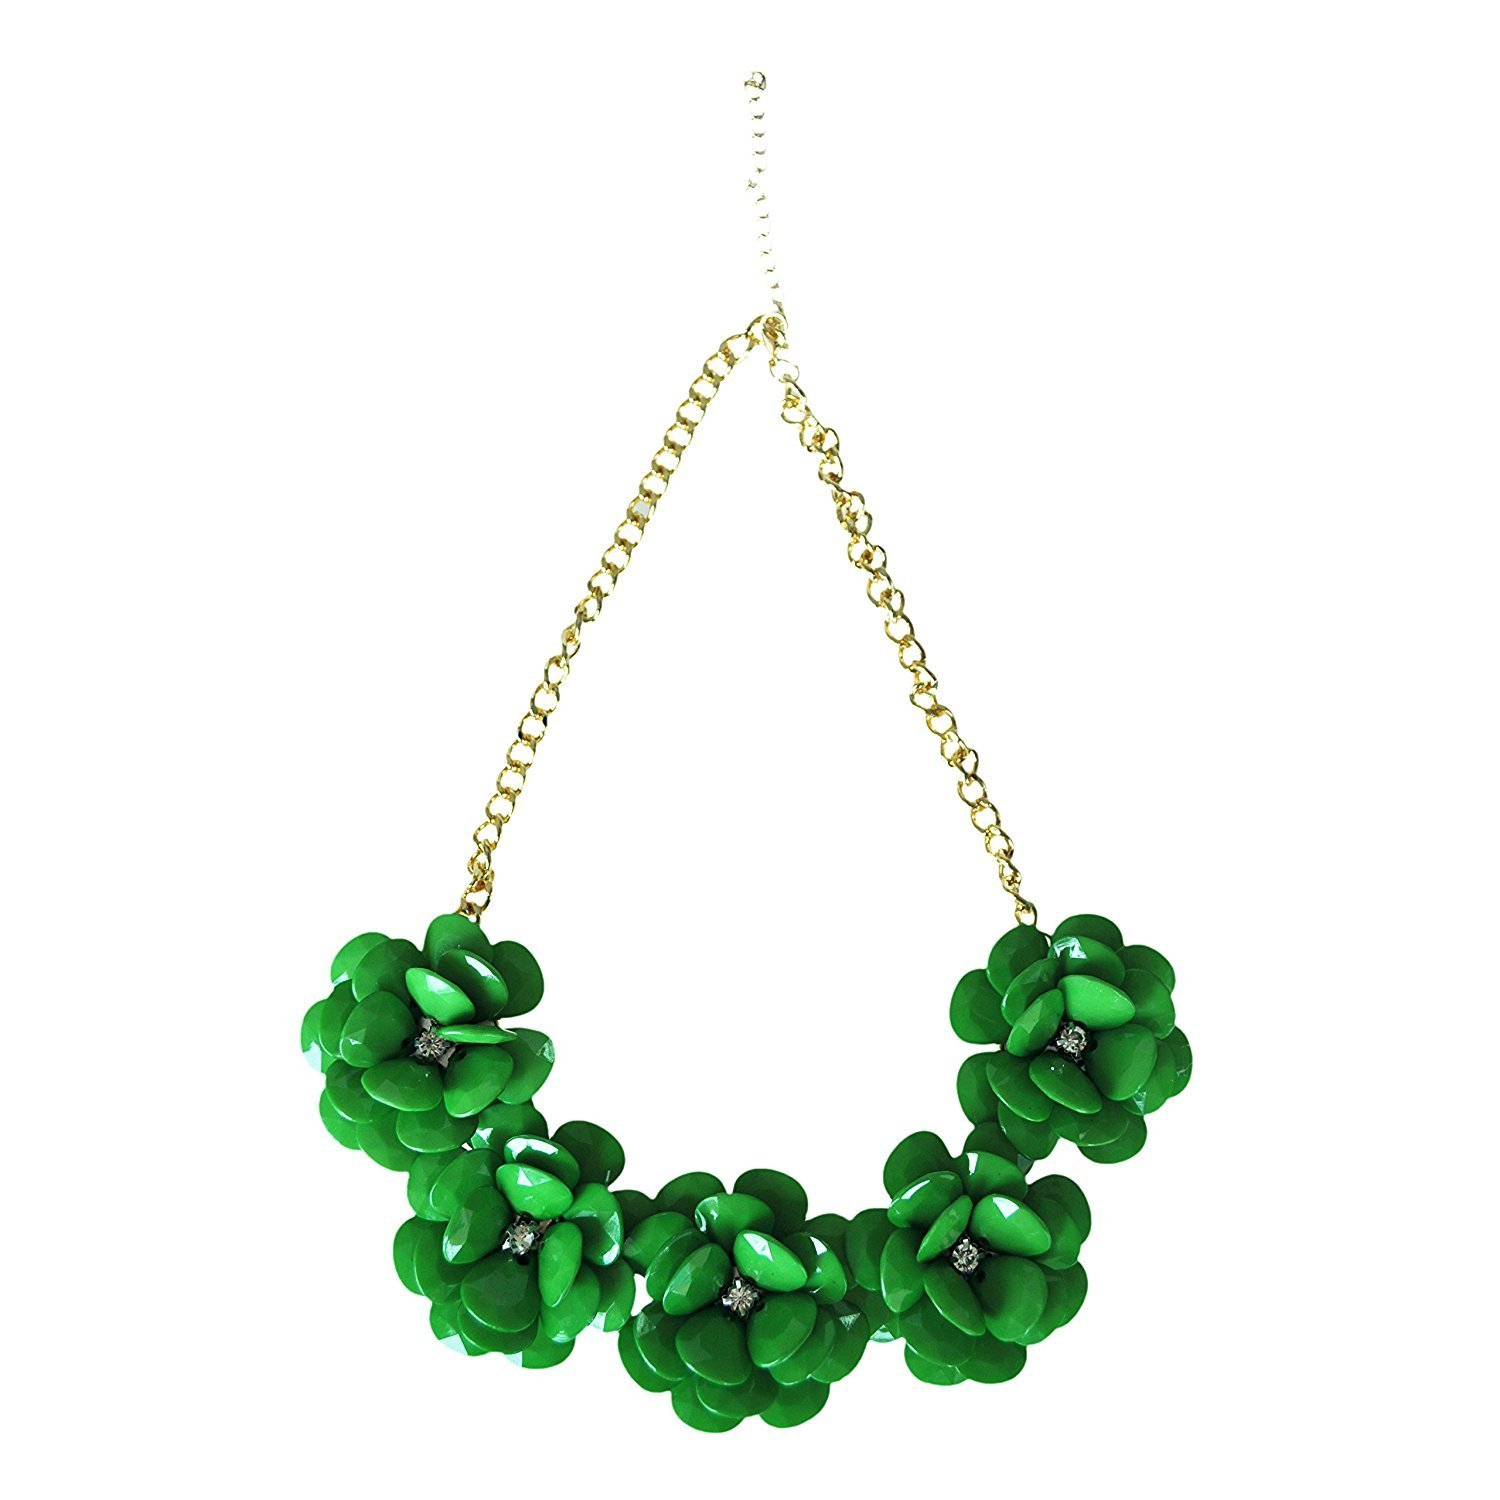 LUQUAN Most Fashion Jewelry Zinc Alloy With Acrylic Perfect Five Flower Necklace Necklaces & Pendants Green